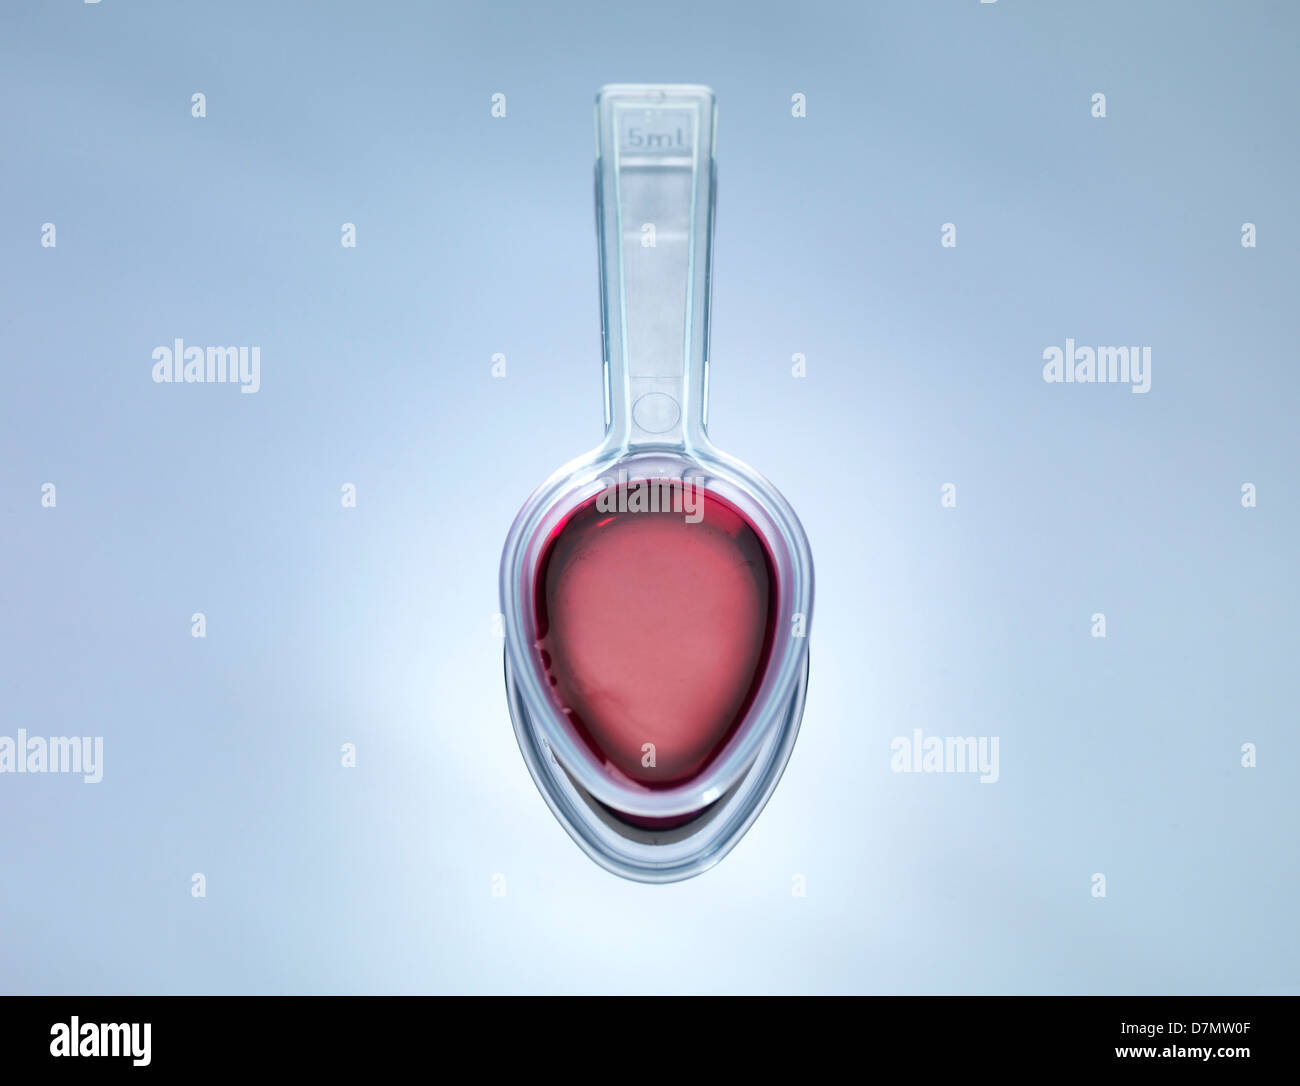 Spoonful of medicine - Stock Image